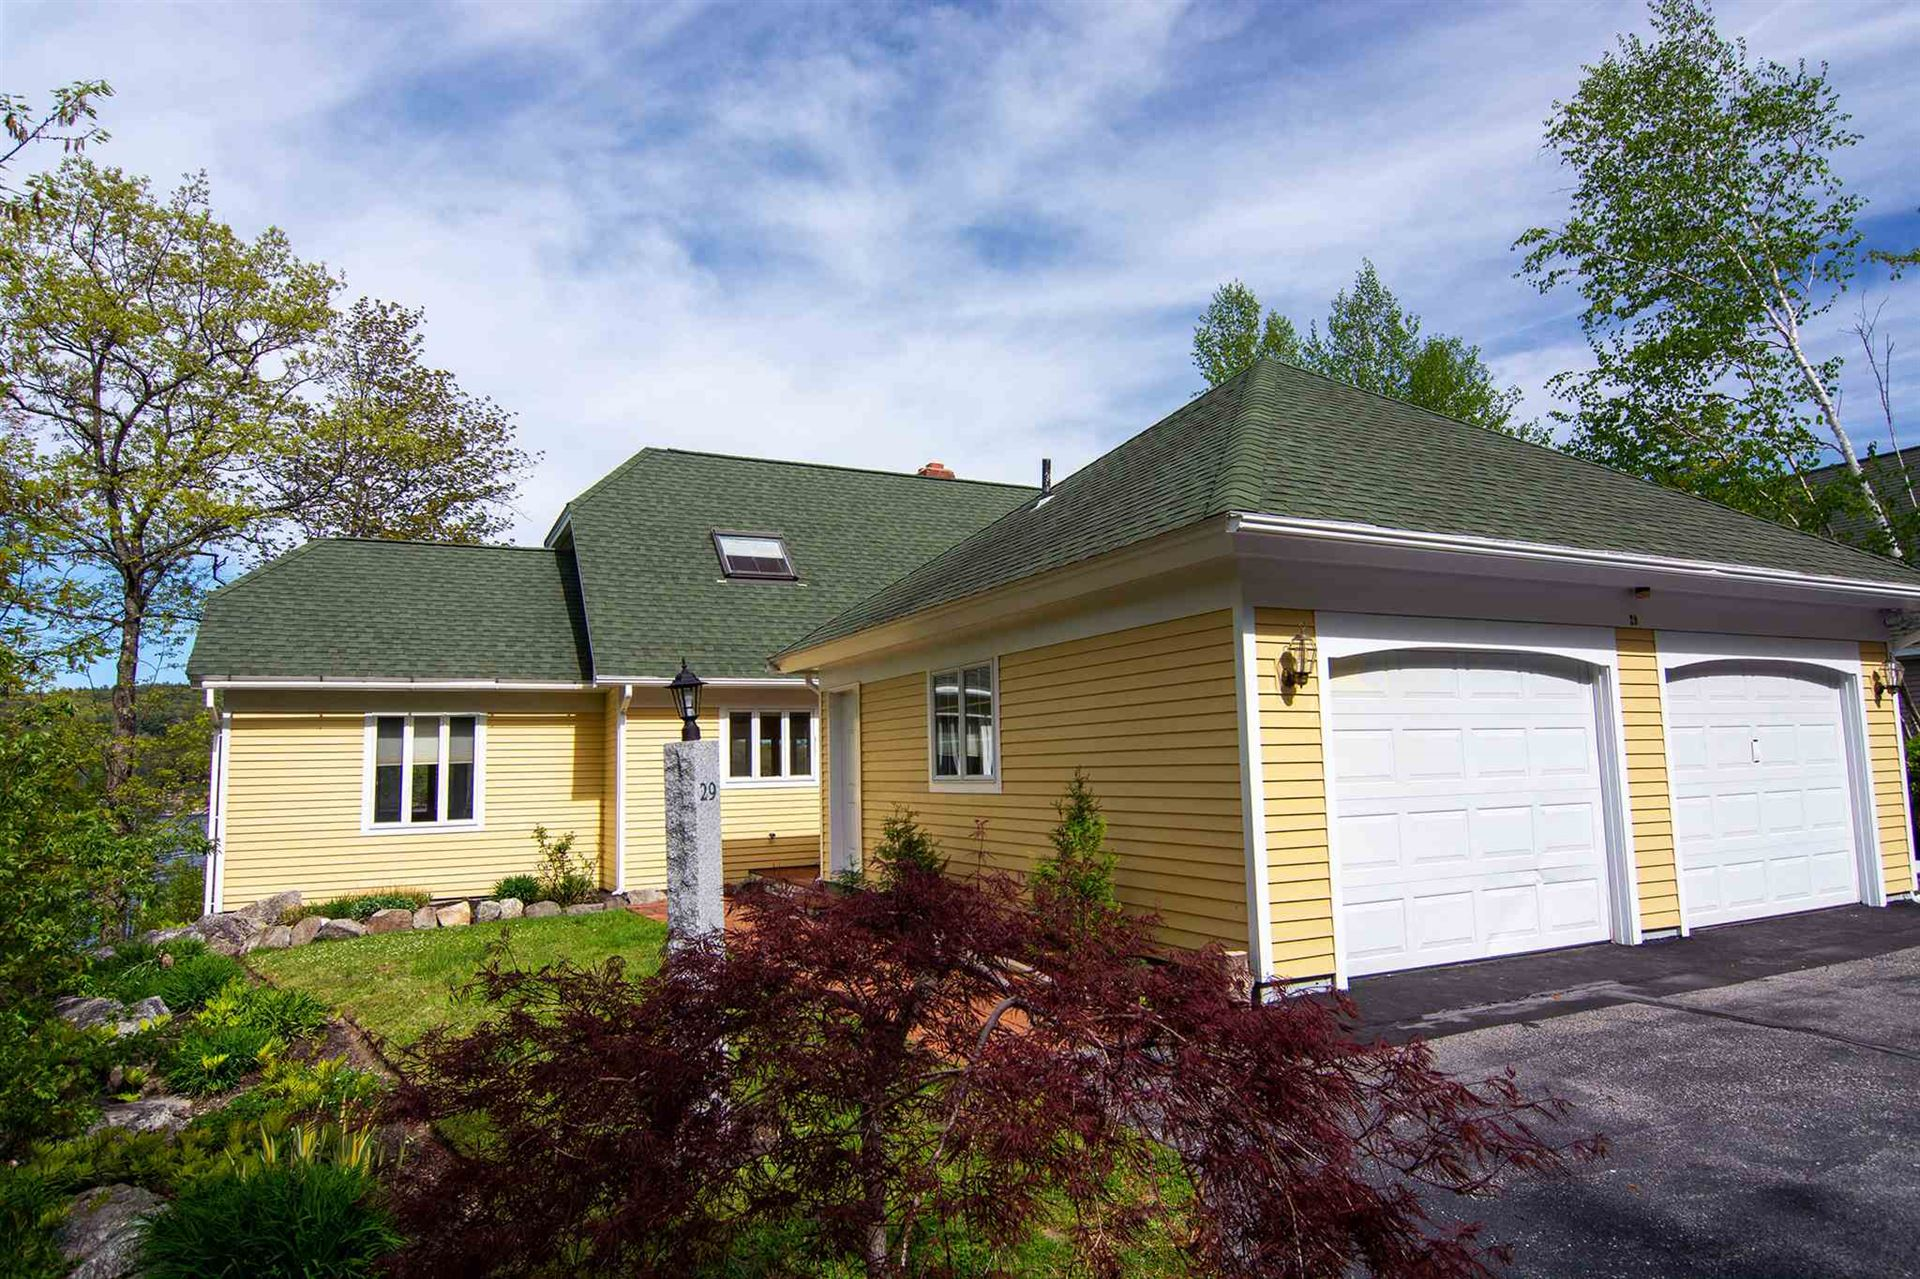 29 Grouse Hollow Road, Meredith, NH 03253 - #: 4777491